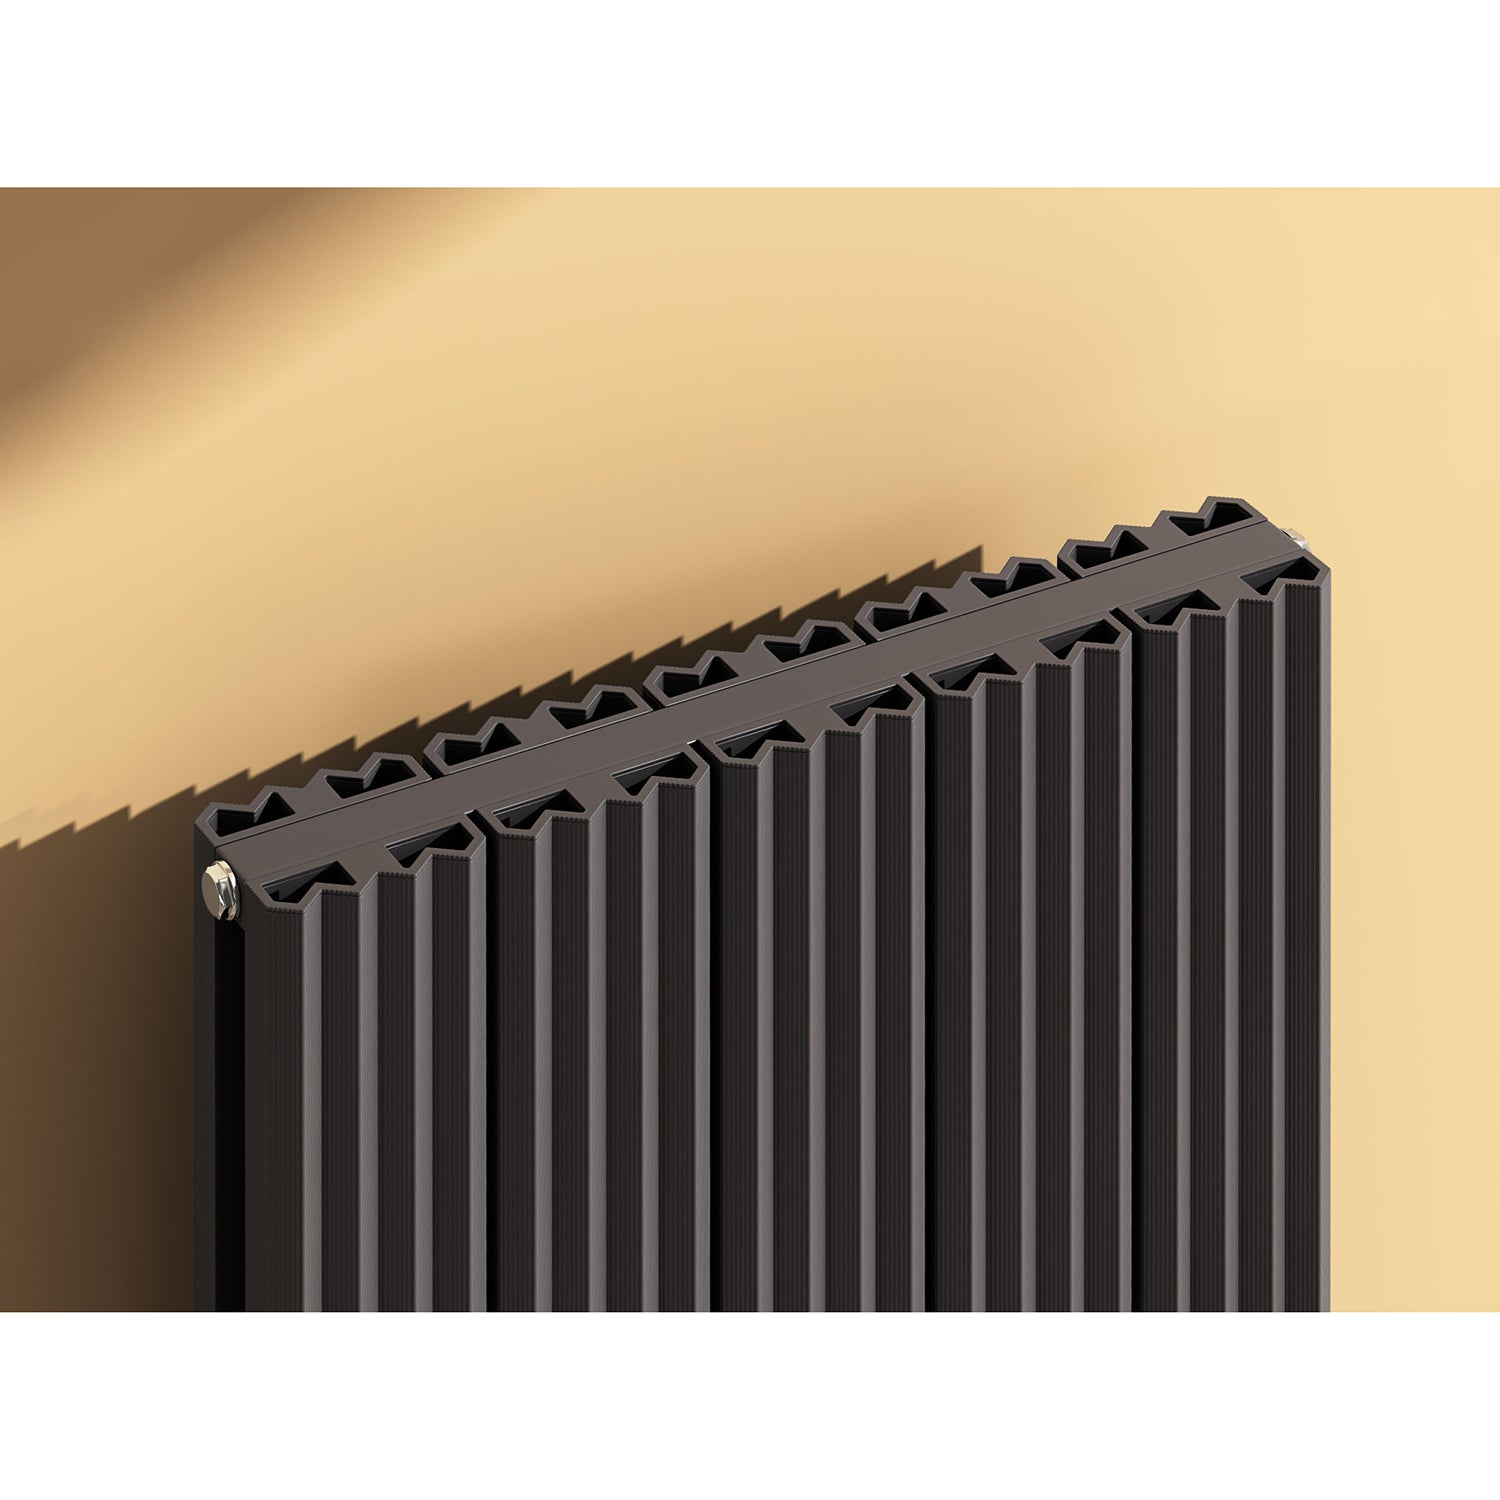 REINA ANDES WHITE VERTICAL RADIATOR CLOSE UP